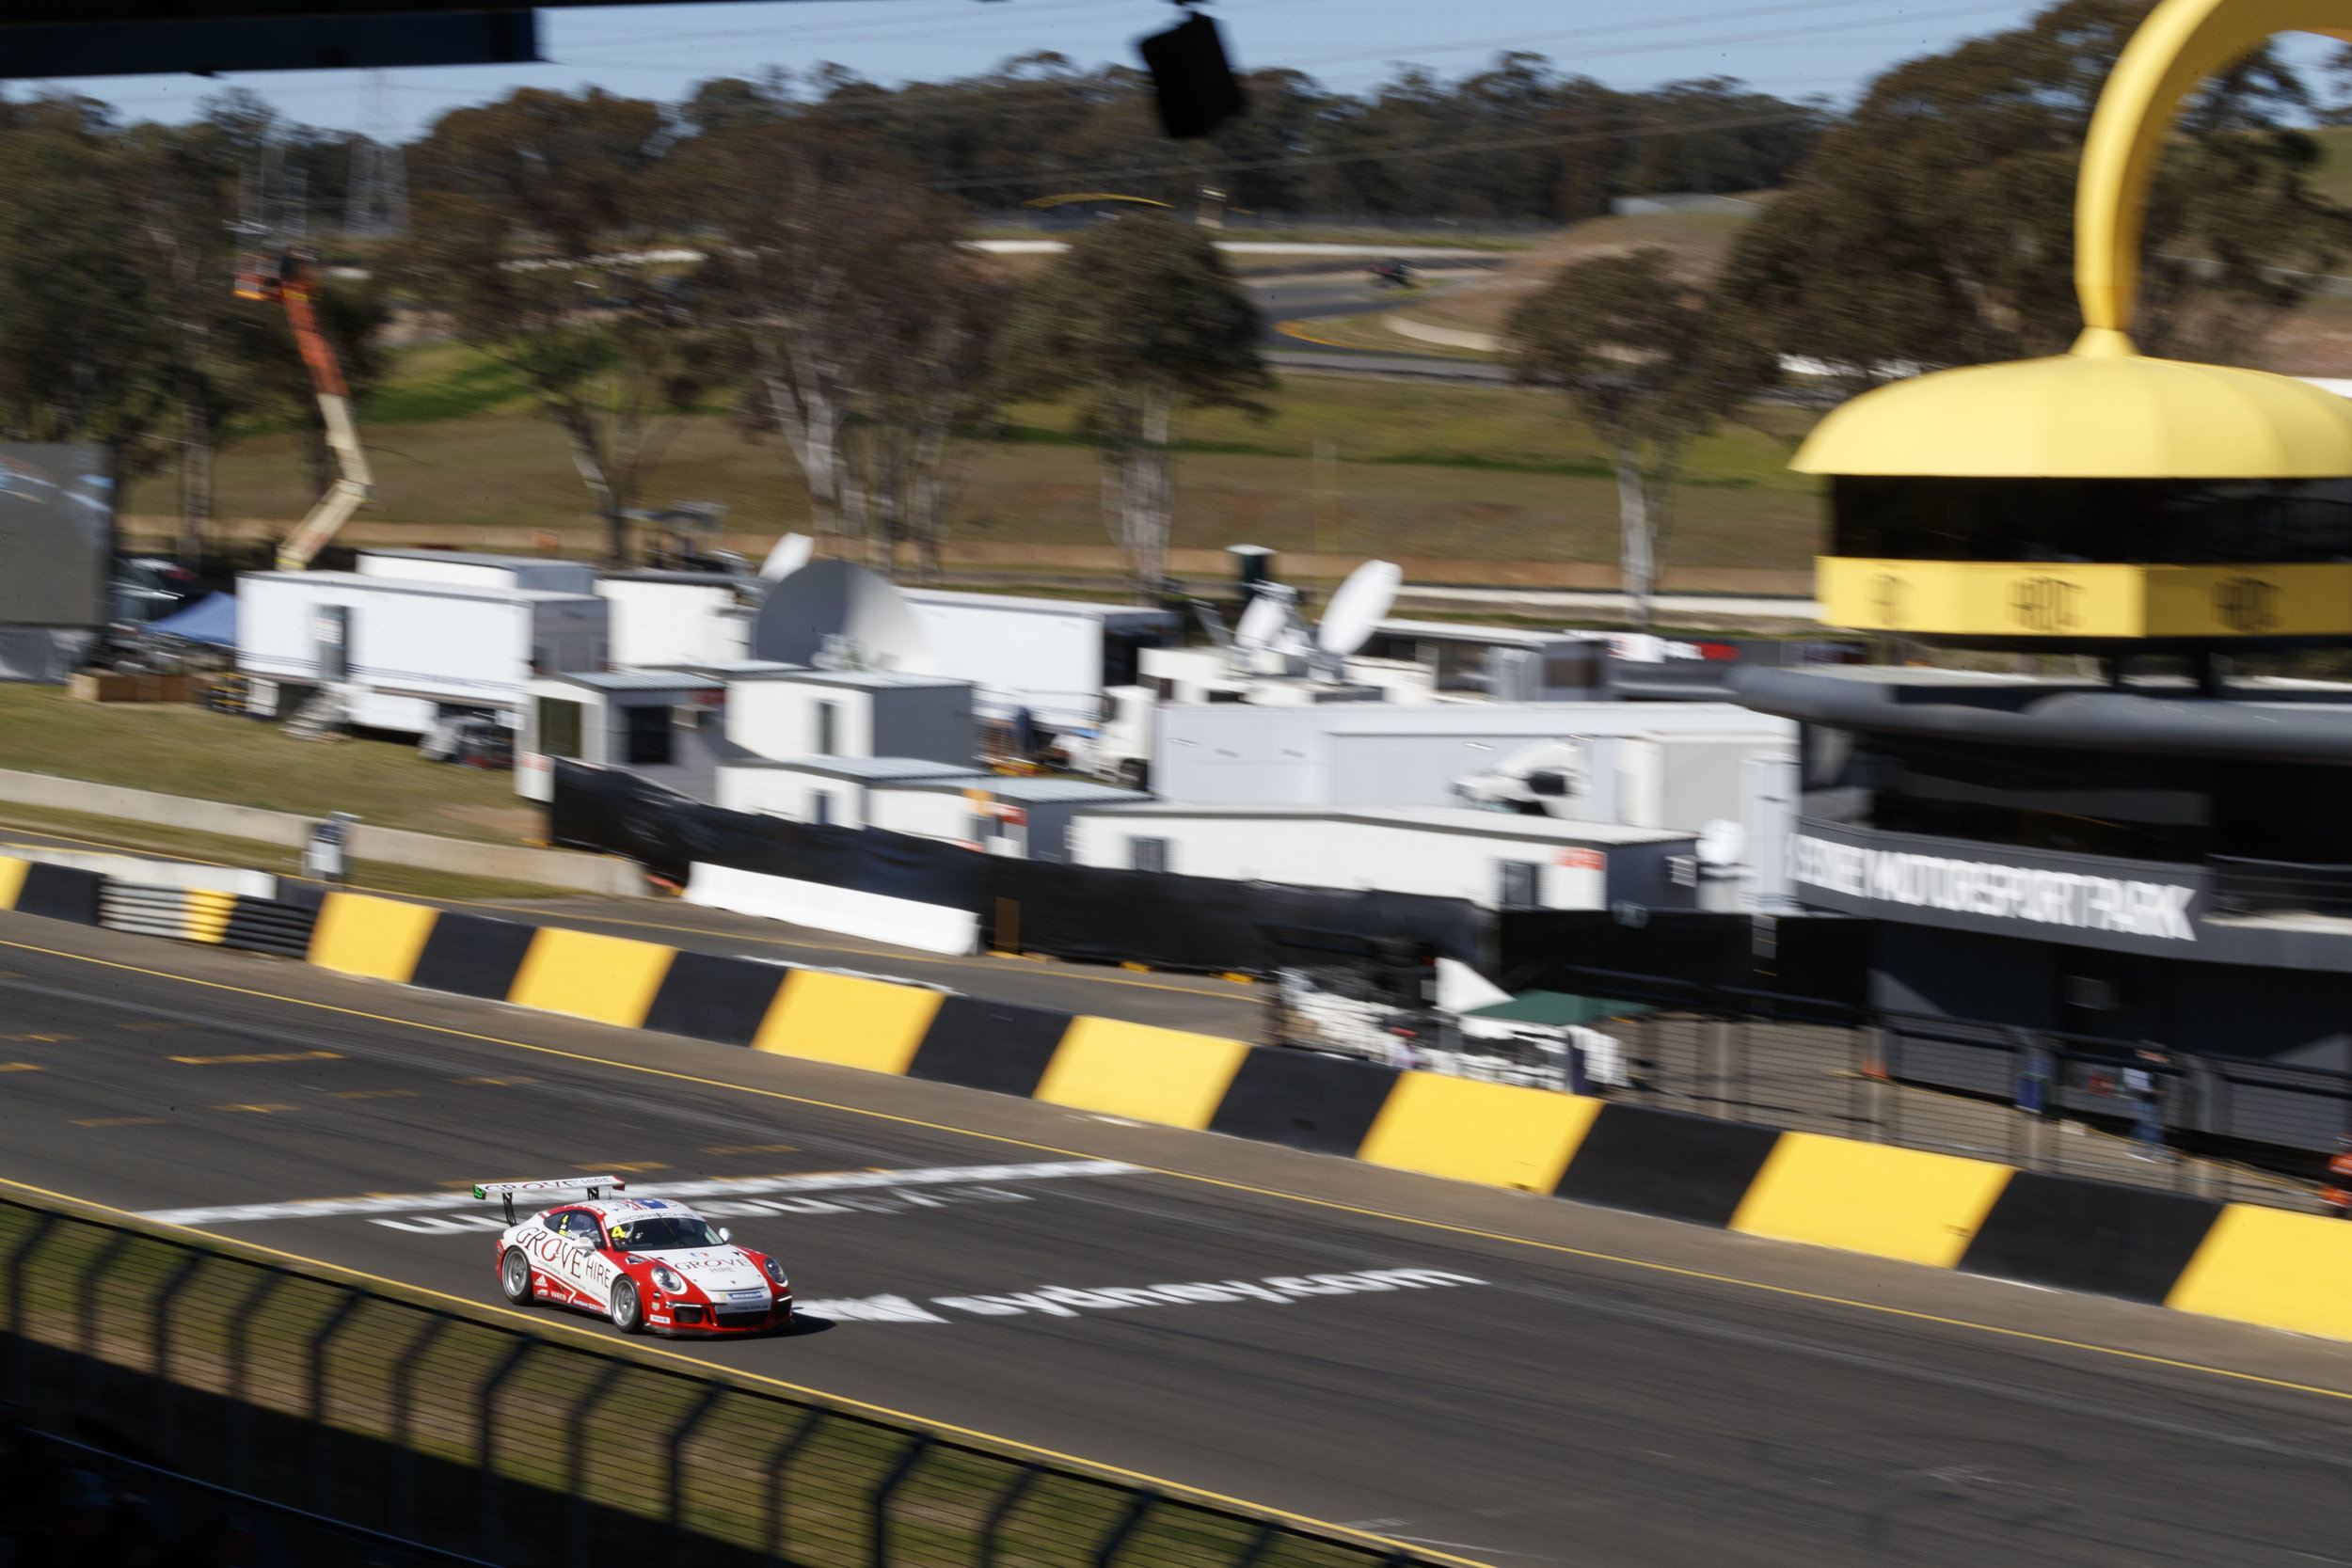 Stephen Grove won the Carrera Cup Australia vs Asia Pro-Am joint race at Sydney Motorsport Park in 2016.